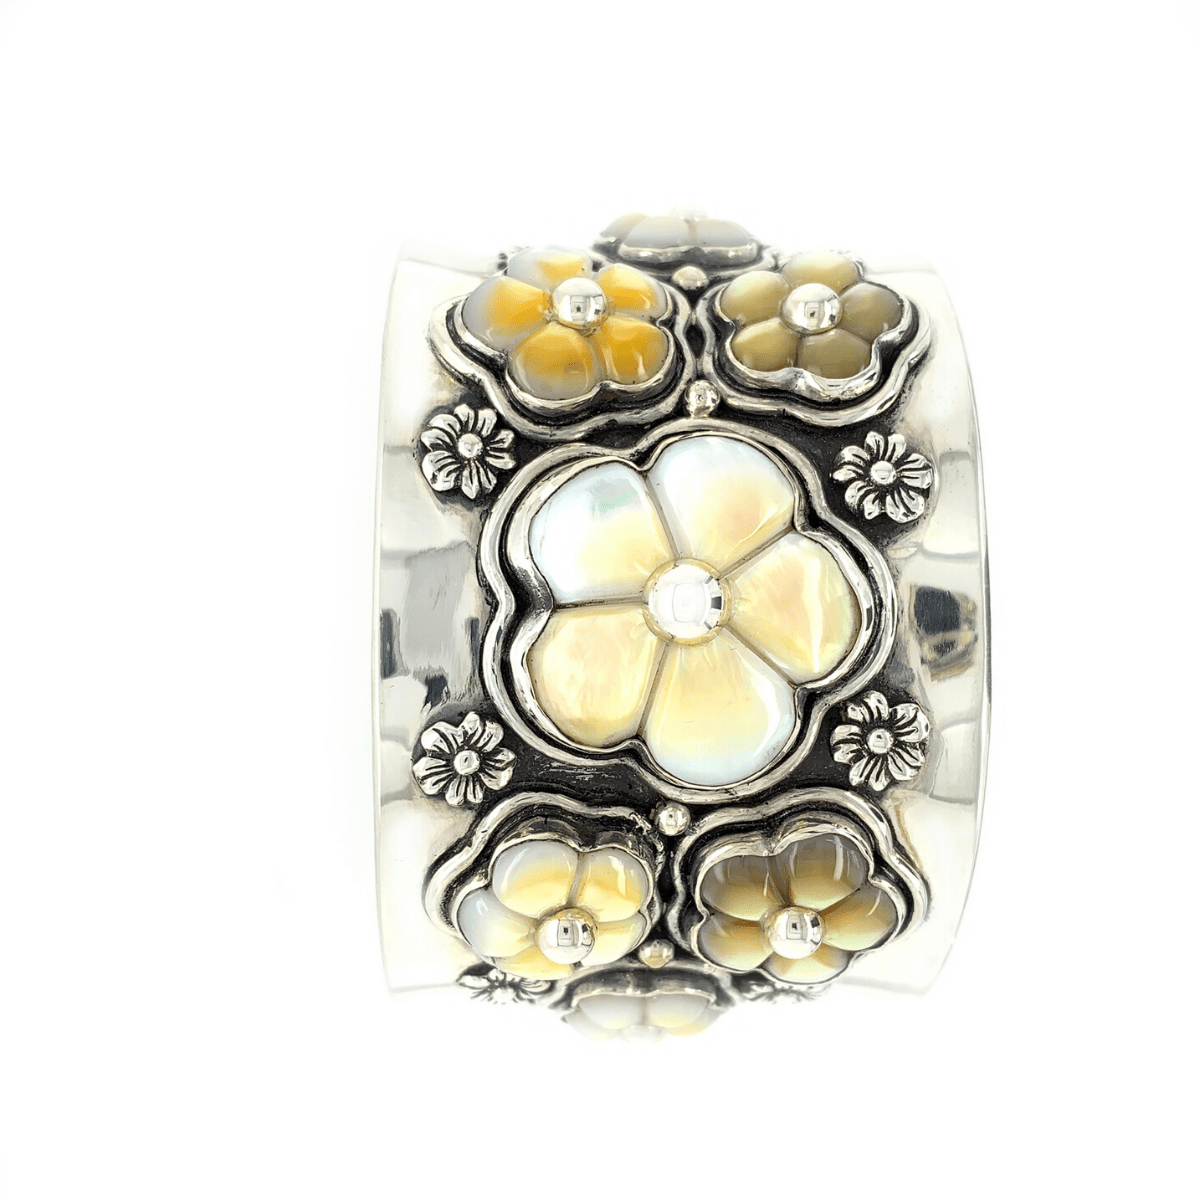 Carved Mother-of-Pearl Flowers & Sterling Silver Cuff - Qinti - The Peruvian Shop